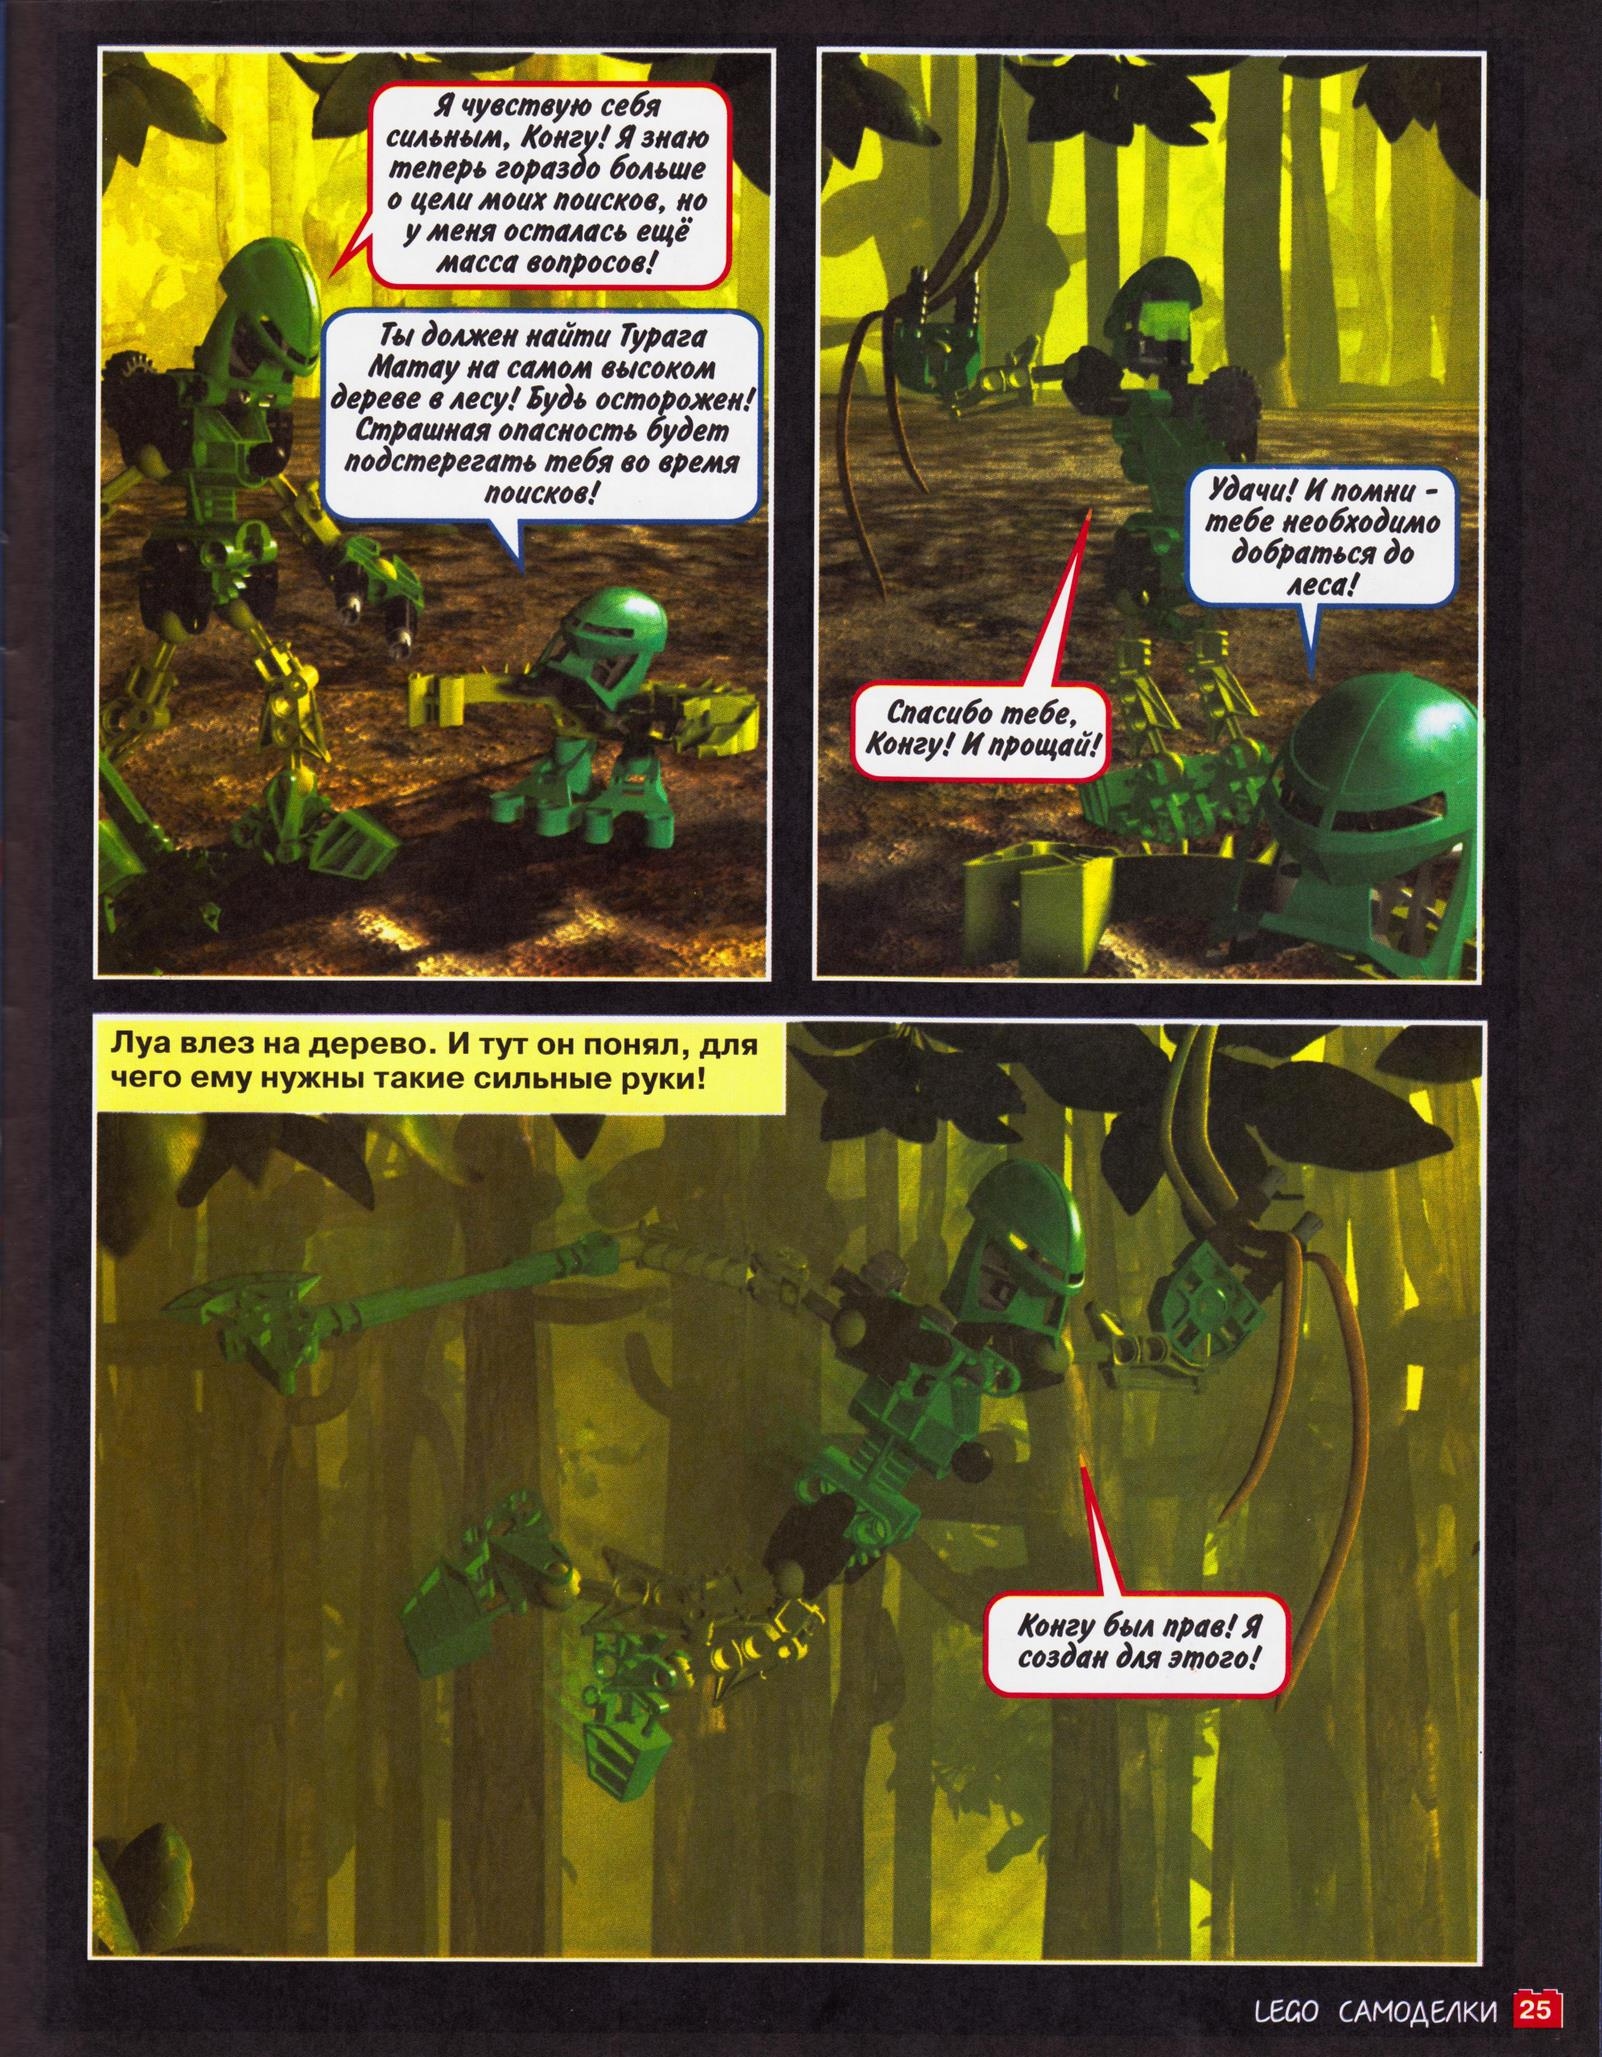 http://biosector01.com/wiki/images/4/4a/The_Legend_of_Lewa_Part_One_Page_Four.jpg